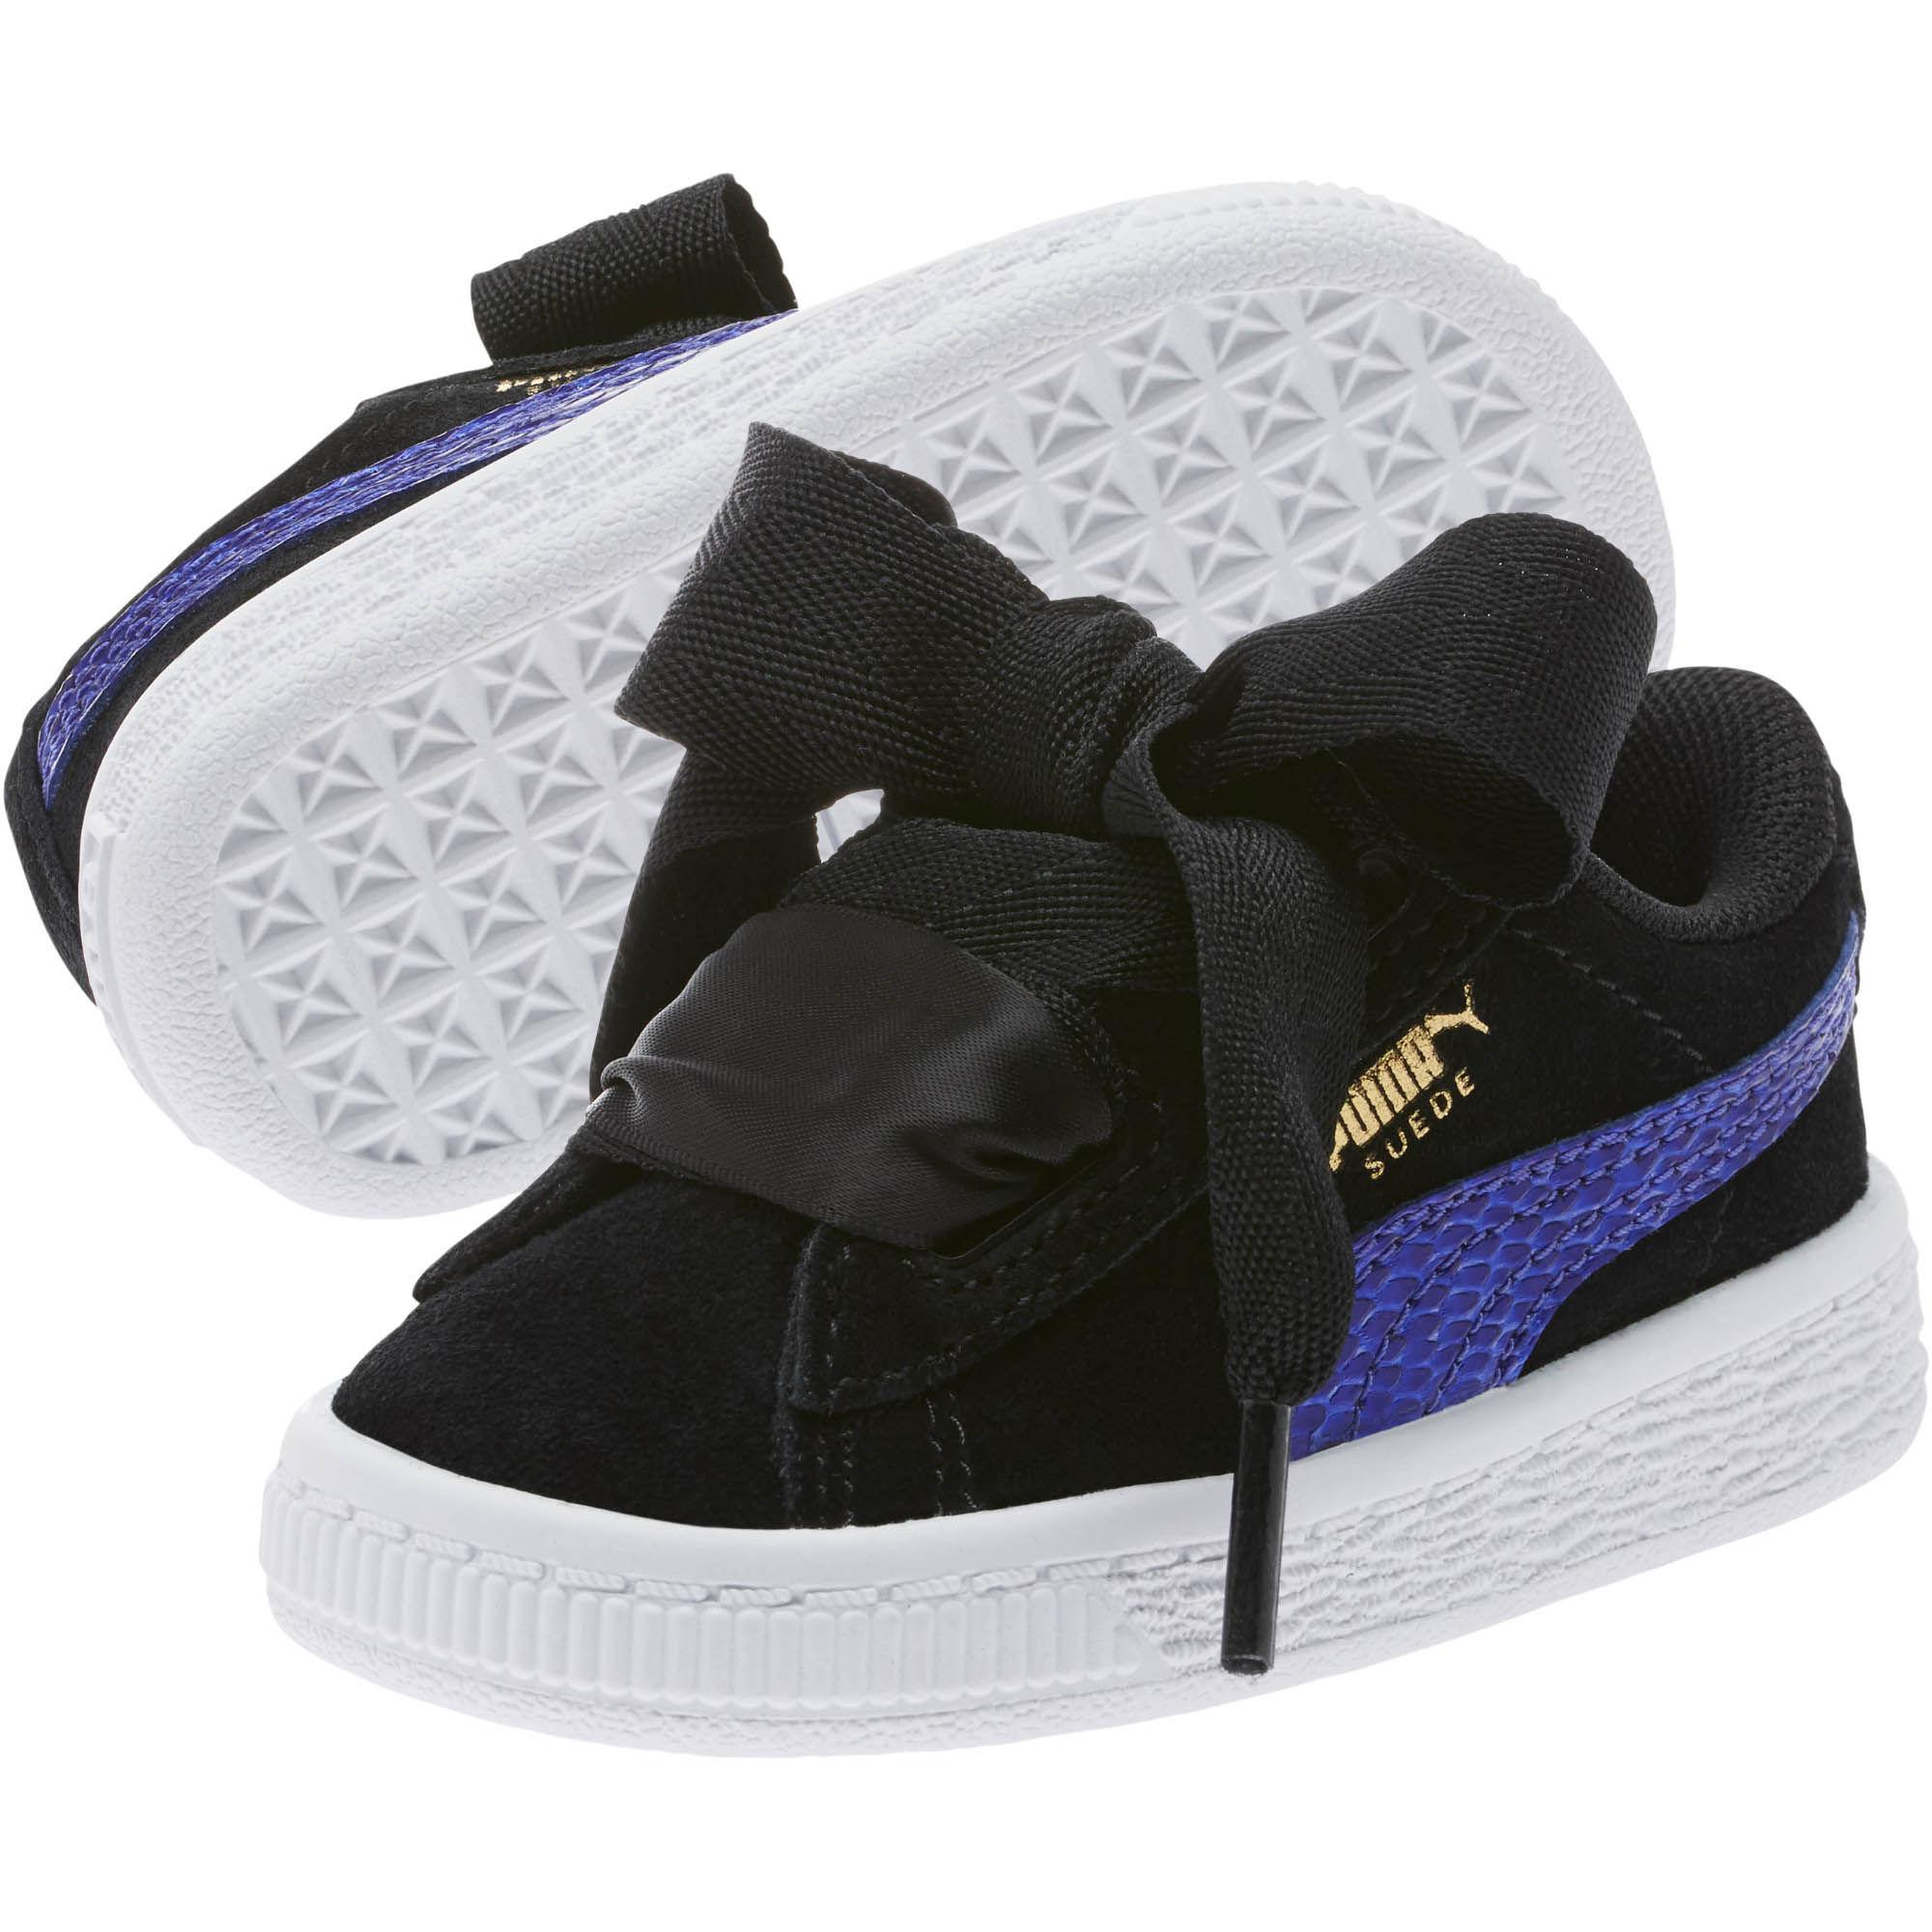 8cbcb791373e7 puma-Puma-Black-Baja-Blue-Suede-Heart-Snake-Girls-Sneakers.jpeg